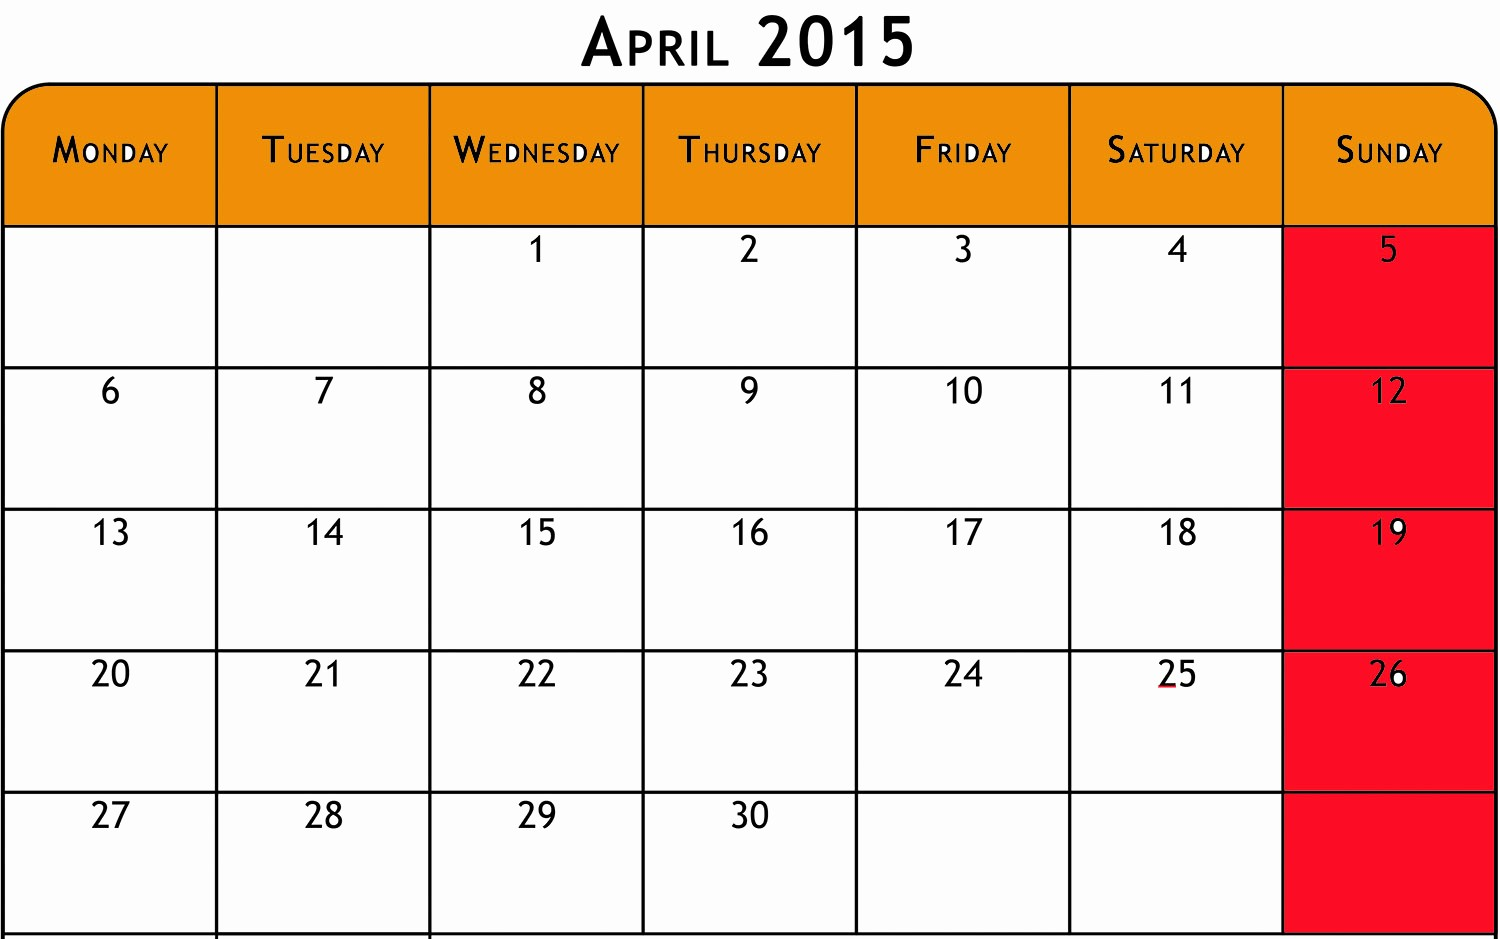 Calendar 2015 Printable with Holidays Unique April 2016 Calendar with Holidays Printable – 2017